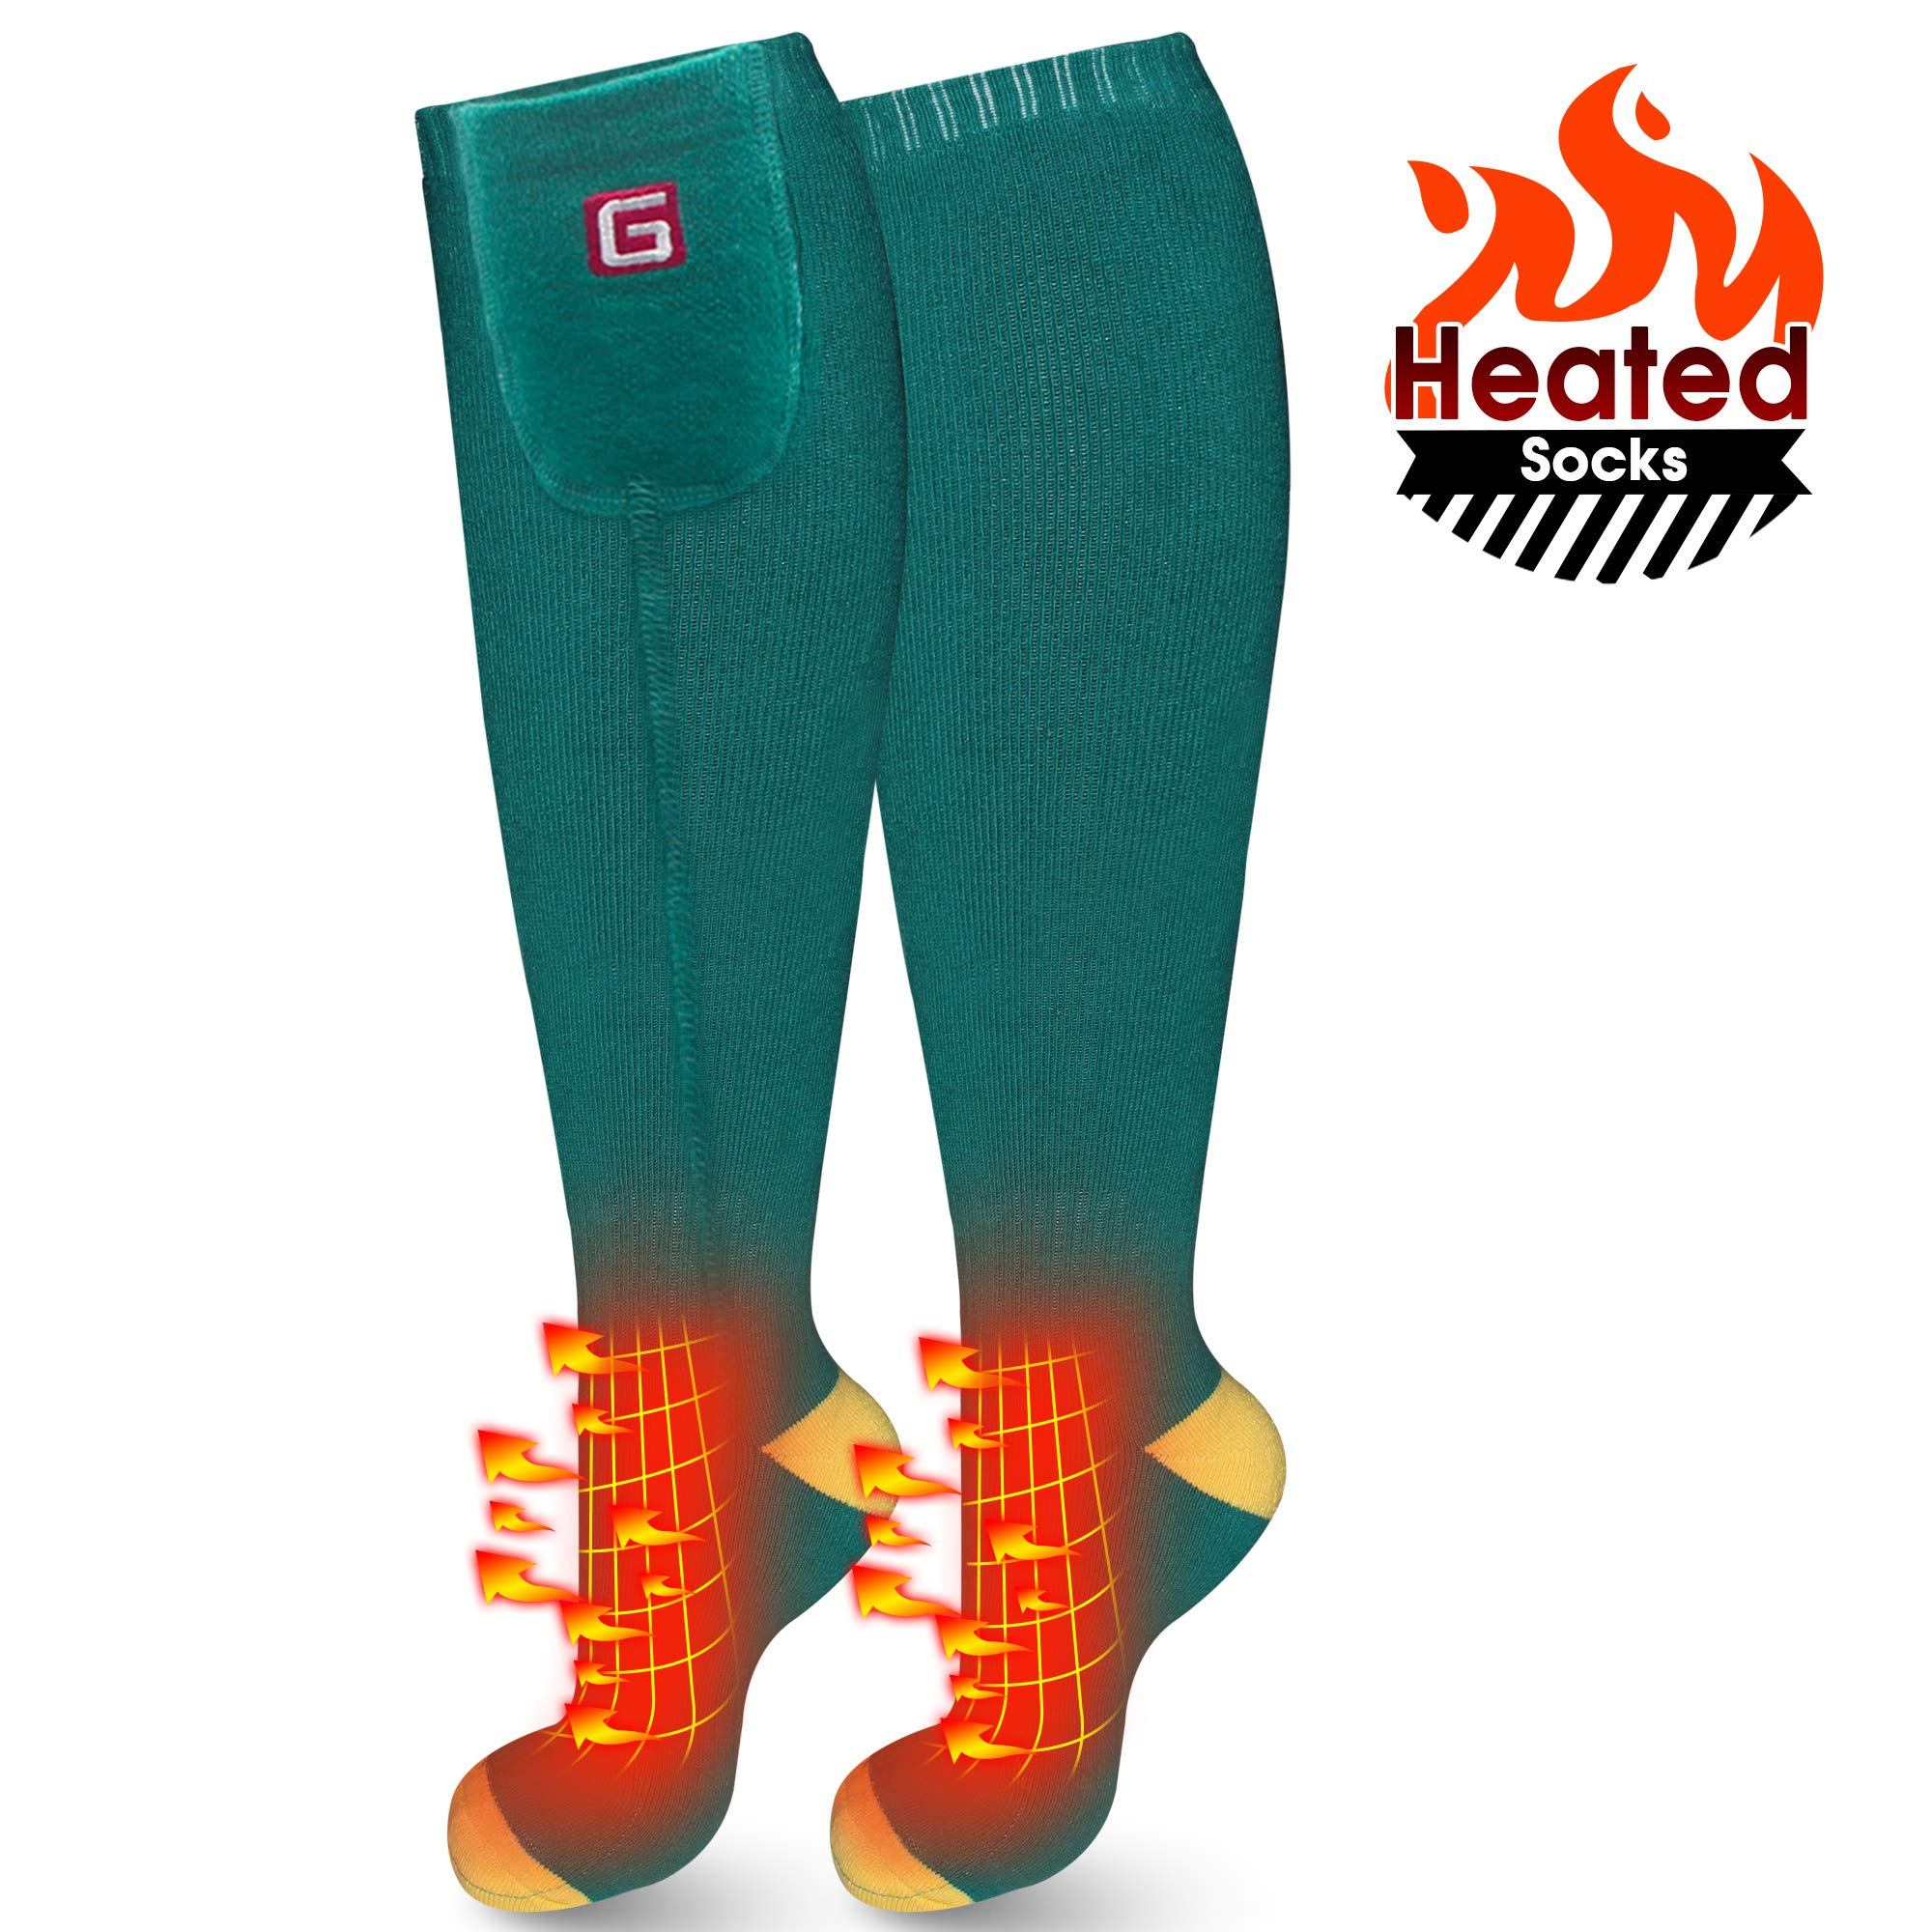 IFWATER Electric Heated Socks for Women Men, Rechargeable Electric Socks Battery Heated Socks Foot Warmer for Chronically Cold Foot, Great for Skiing Hiking Motorcycling Warm Winter Socks (Green-M) by IFWATER